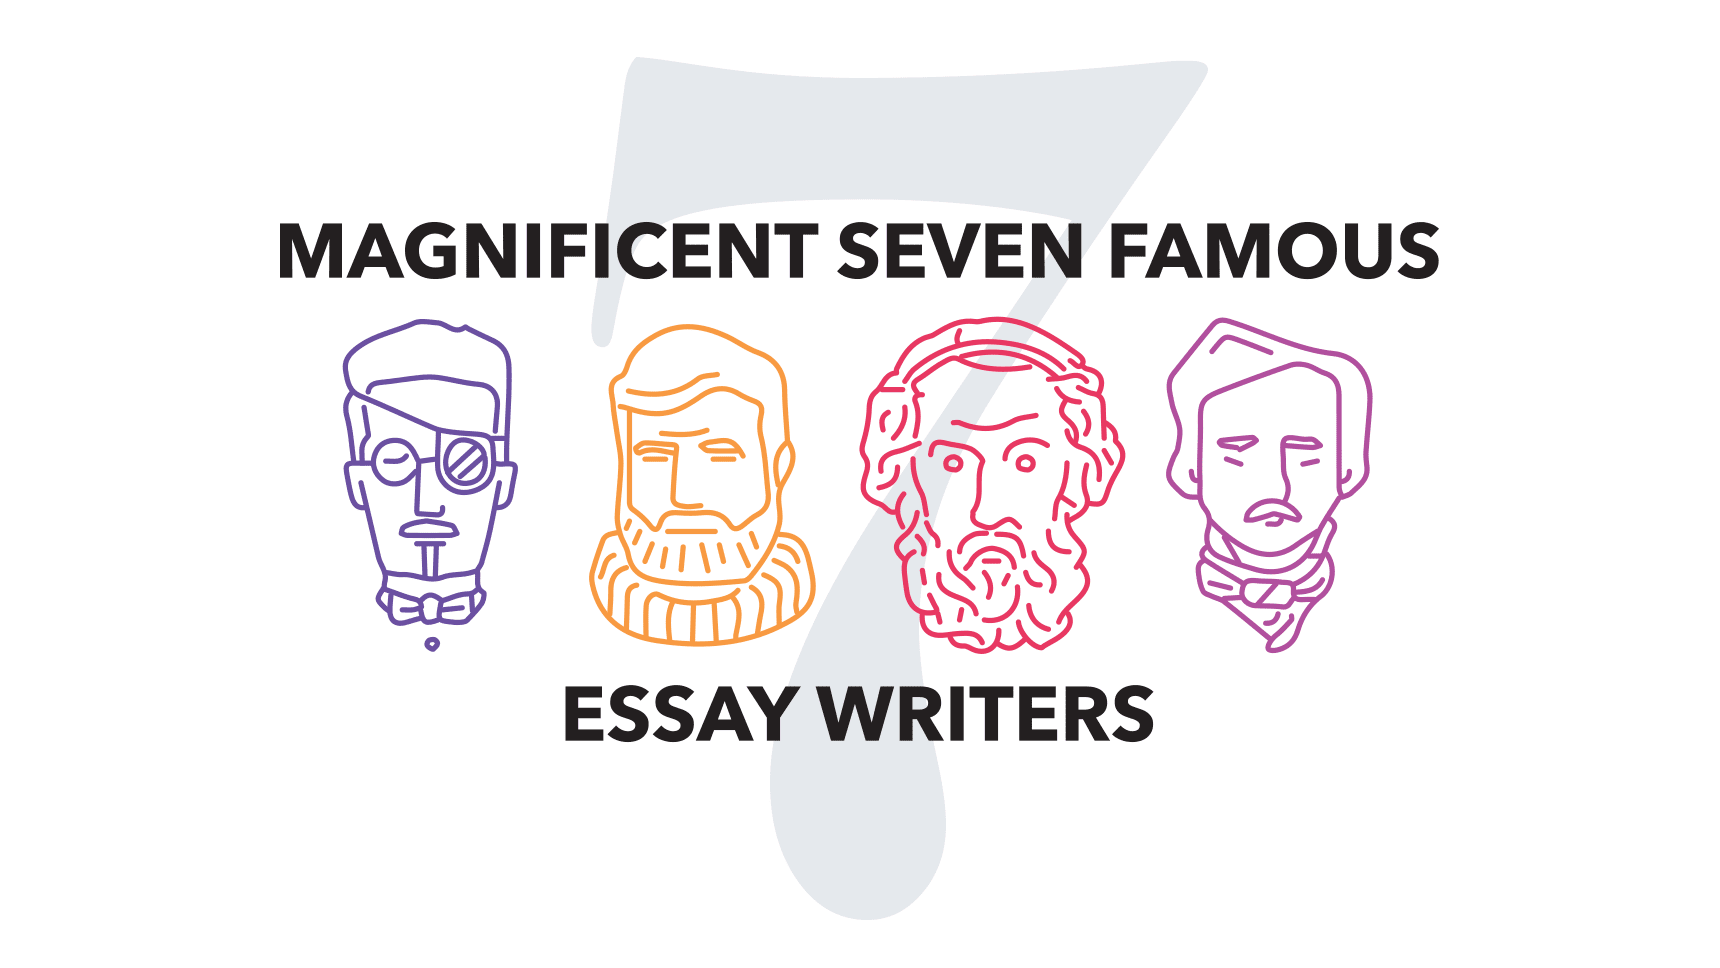 Magnificent Seven Famous Essay Writers